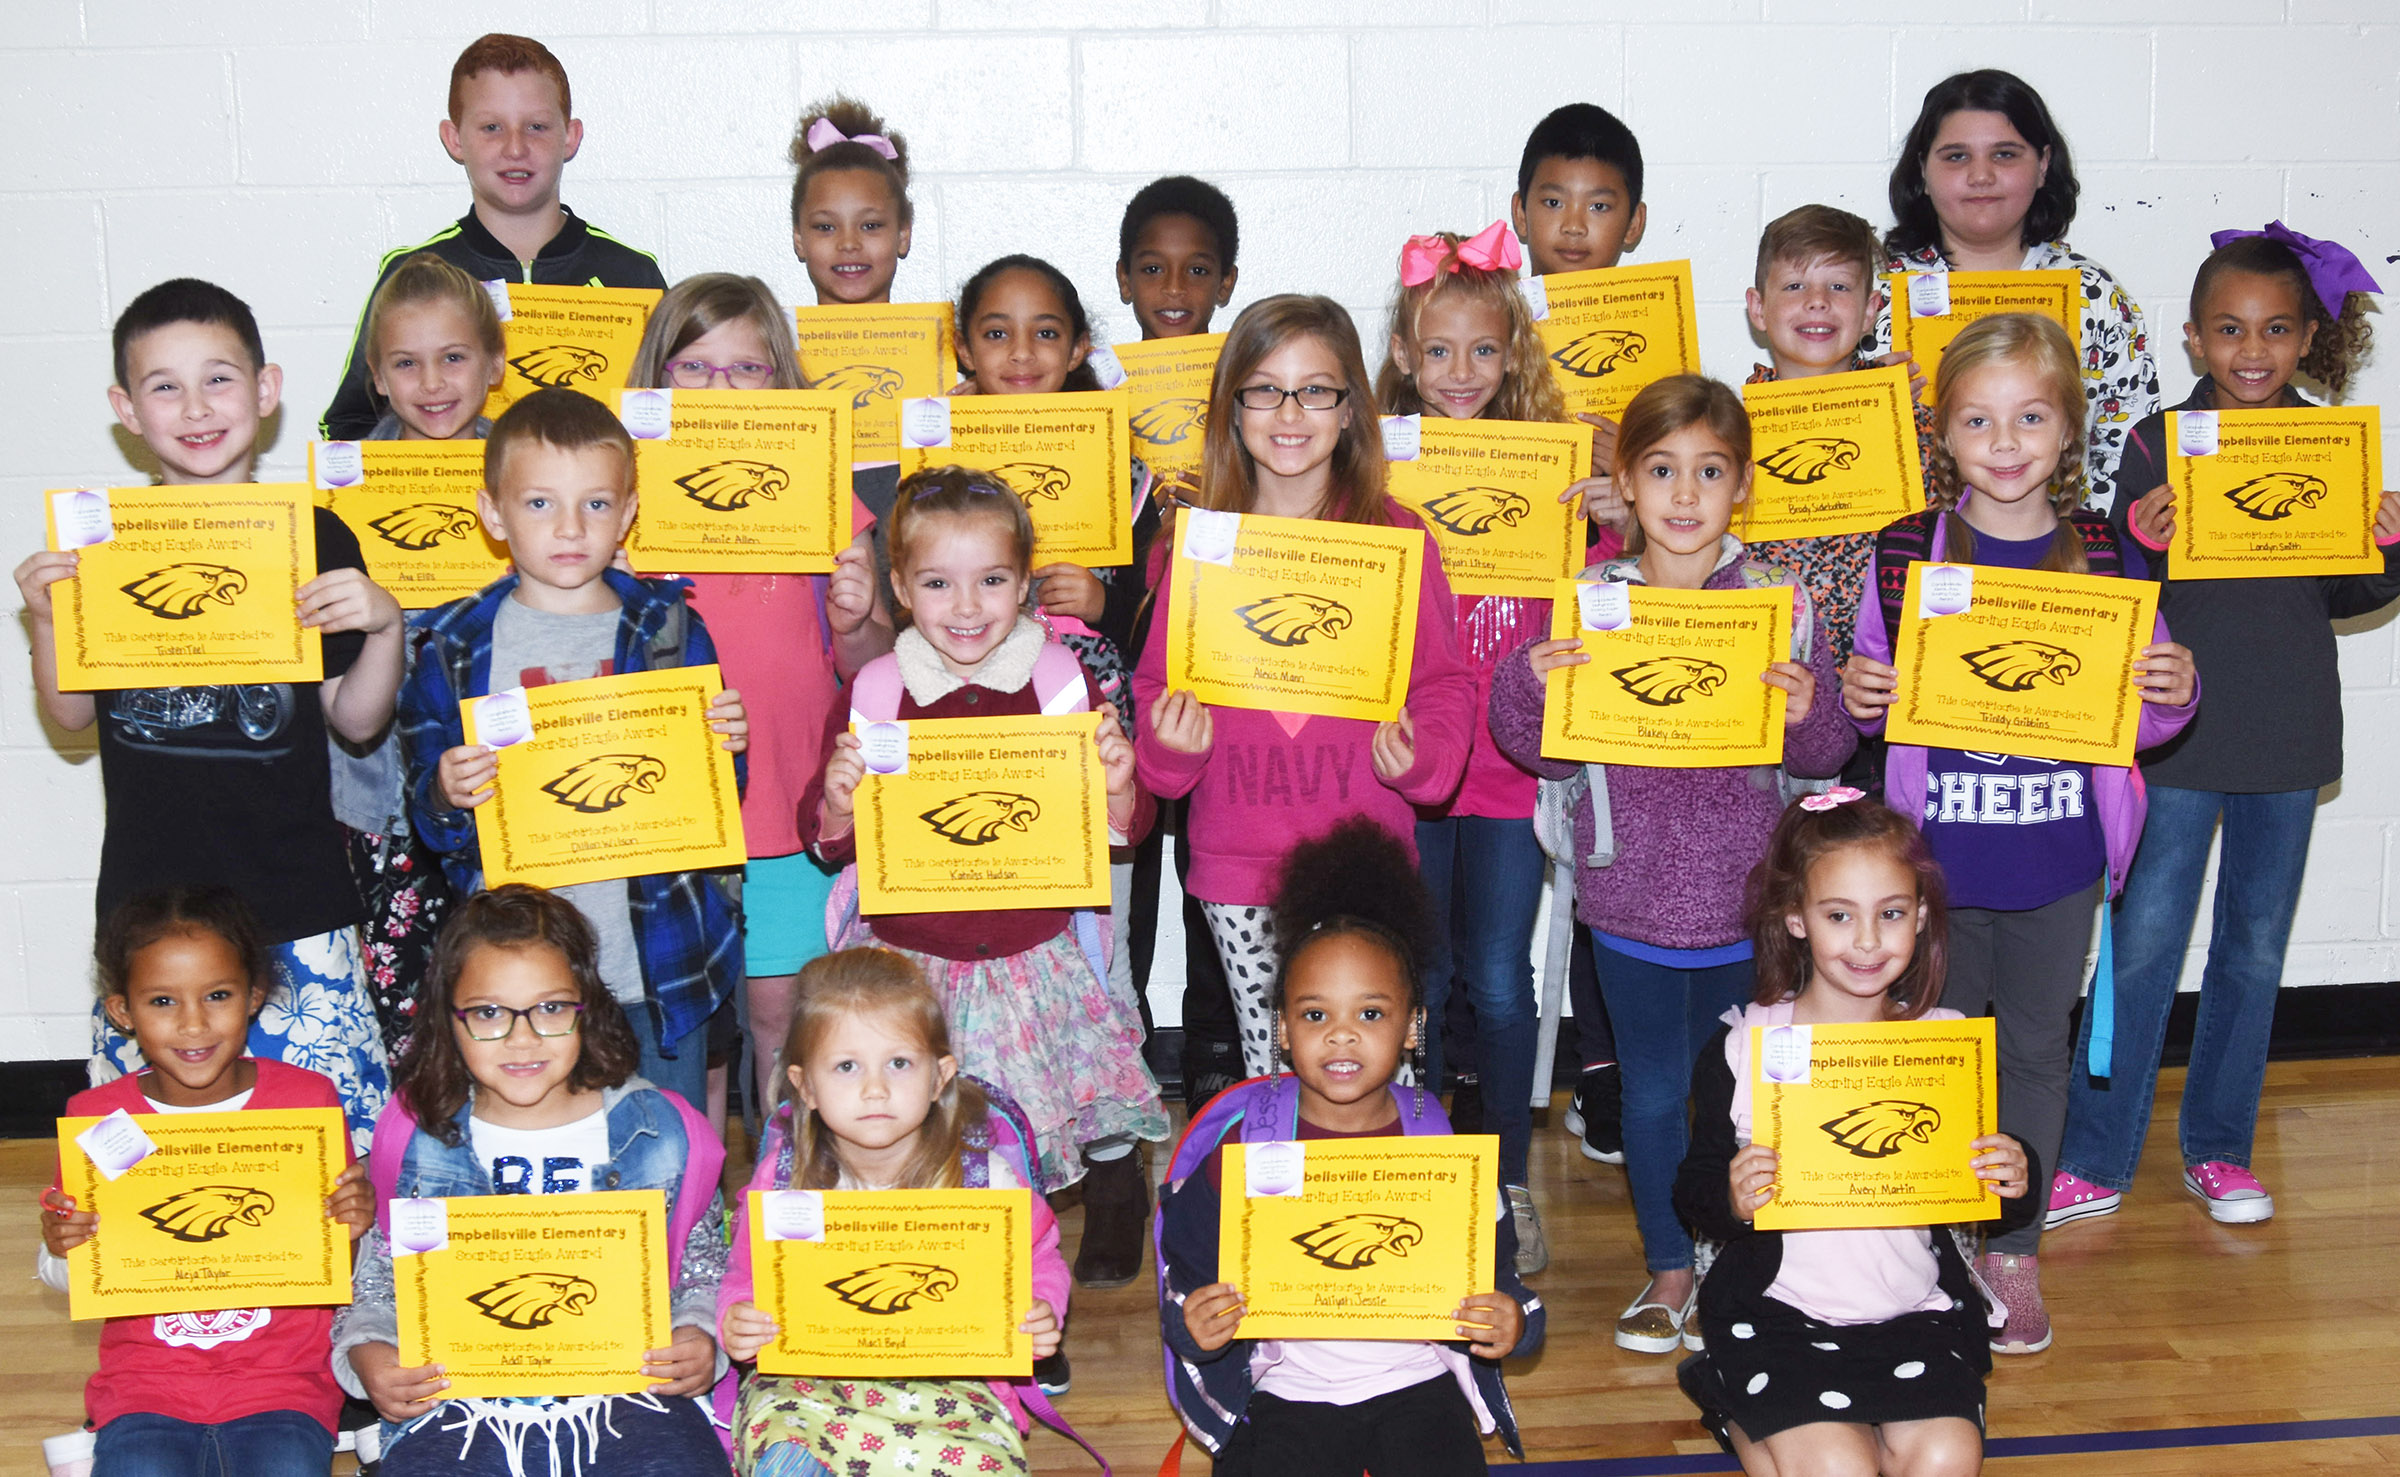 From left, front, are second-grader Aleja Taylor, first-grader Addisyn Taylor and kindergarteners Maci Boyd, Aaliyah Jessie and Avery Martin. Second row, second-grader Tristan Teel, first-grader Alex Wilson, kindergartener Katniss Hudson, third-grader Alexis Mann, kindergartener Blakely Gray and first-grader Trinidy Gribbins. Third row, fourth-grader Ava Ellis, first-grader Annie Allen, third-grader Essence Hunter, second-grader Aliyah Litsey and third-graders Brody Sidebottom and Londyn Smith. Back, fourth-grader Reece Swafford and fifth-graders Alexis Graves, Tionday Slaughter, Alfie Su and Kailei Hernandez.